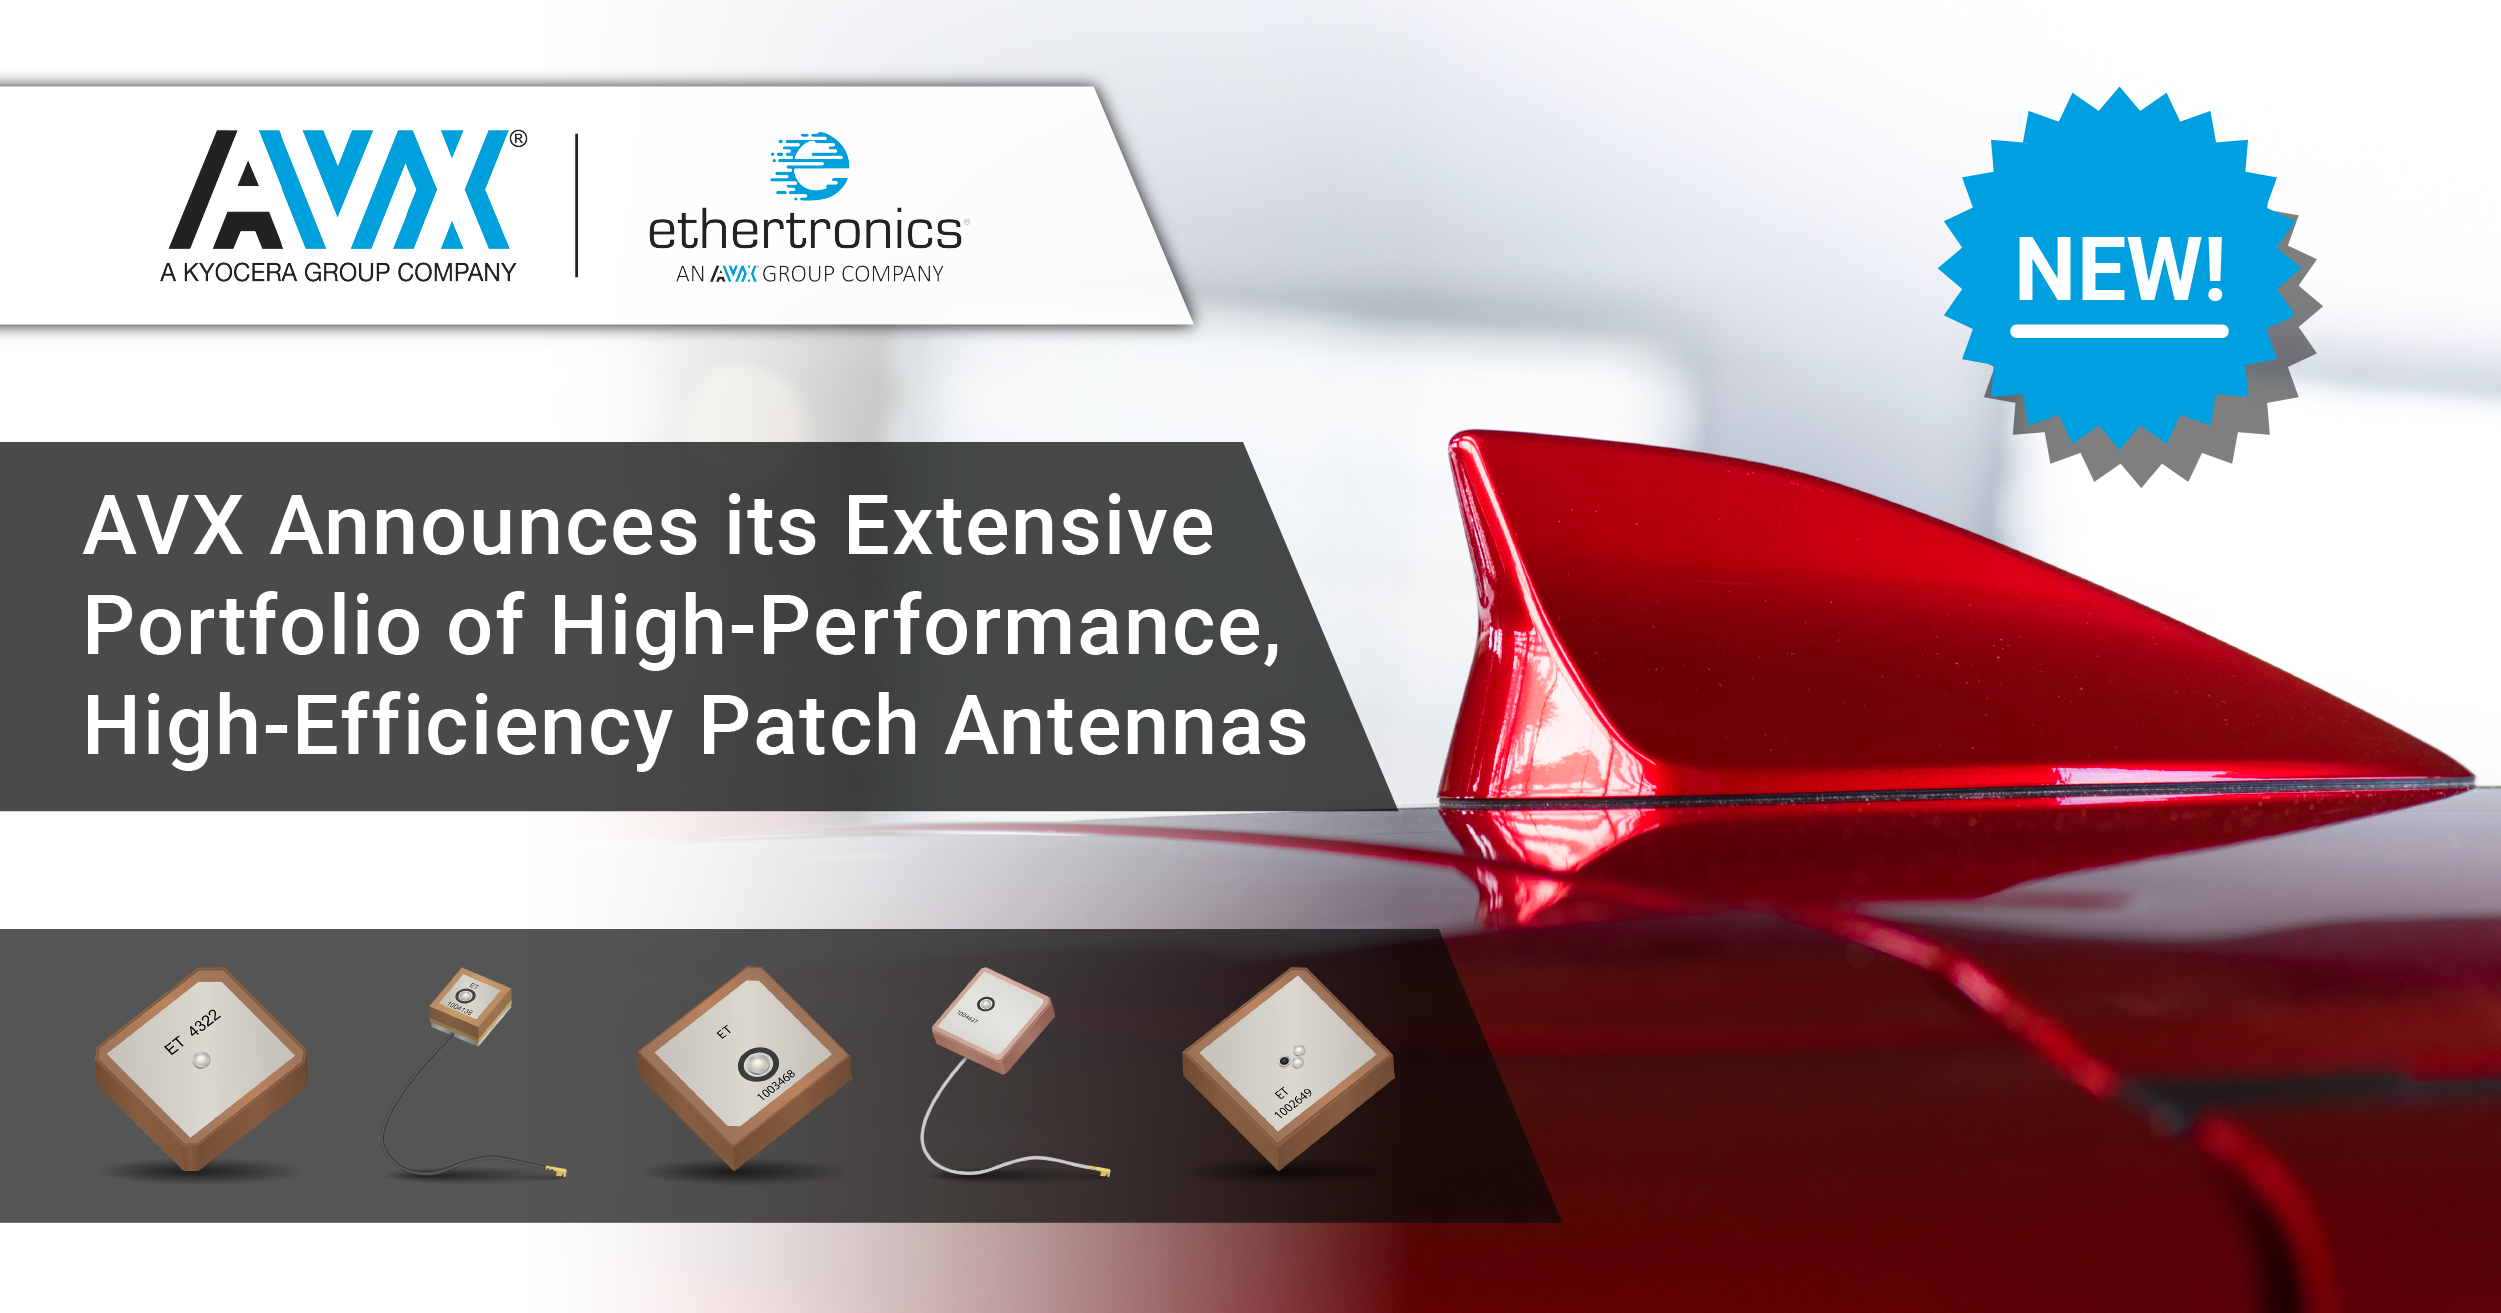 AVX/Ethertronics' High-Efficiency Patch Antenna Portfolio